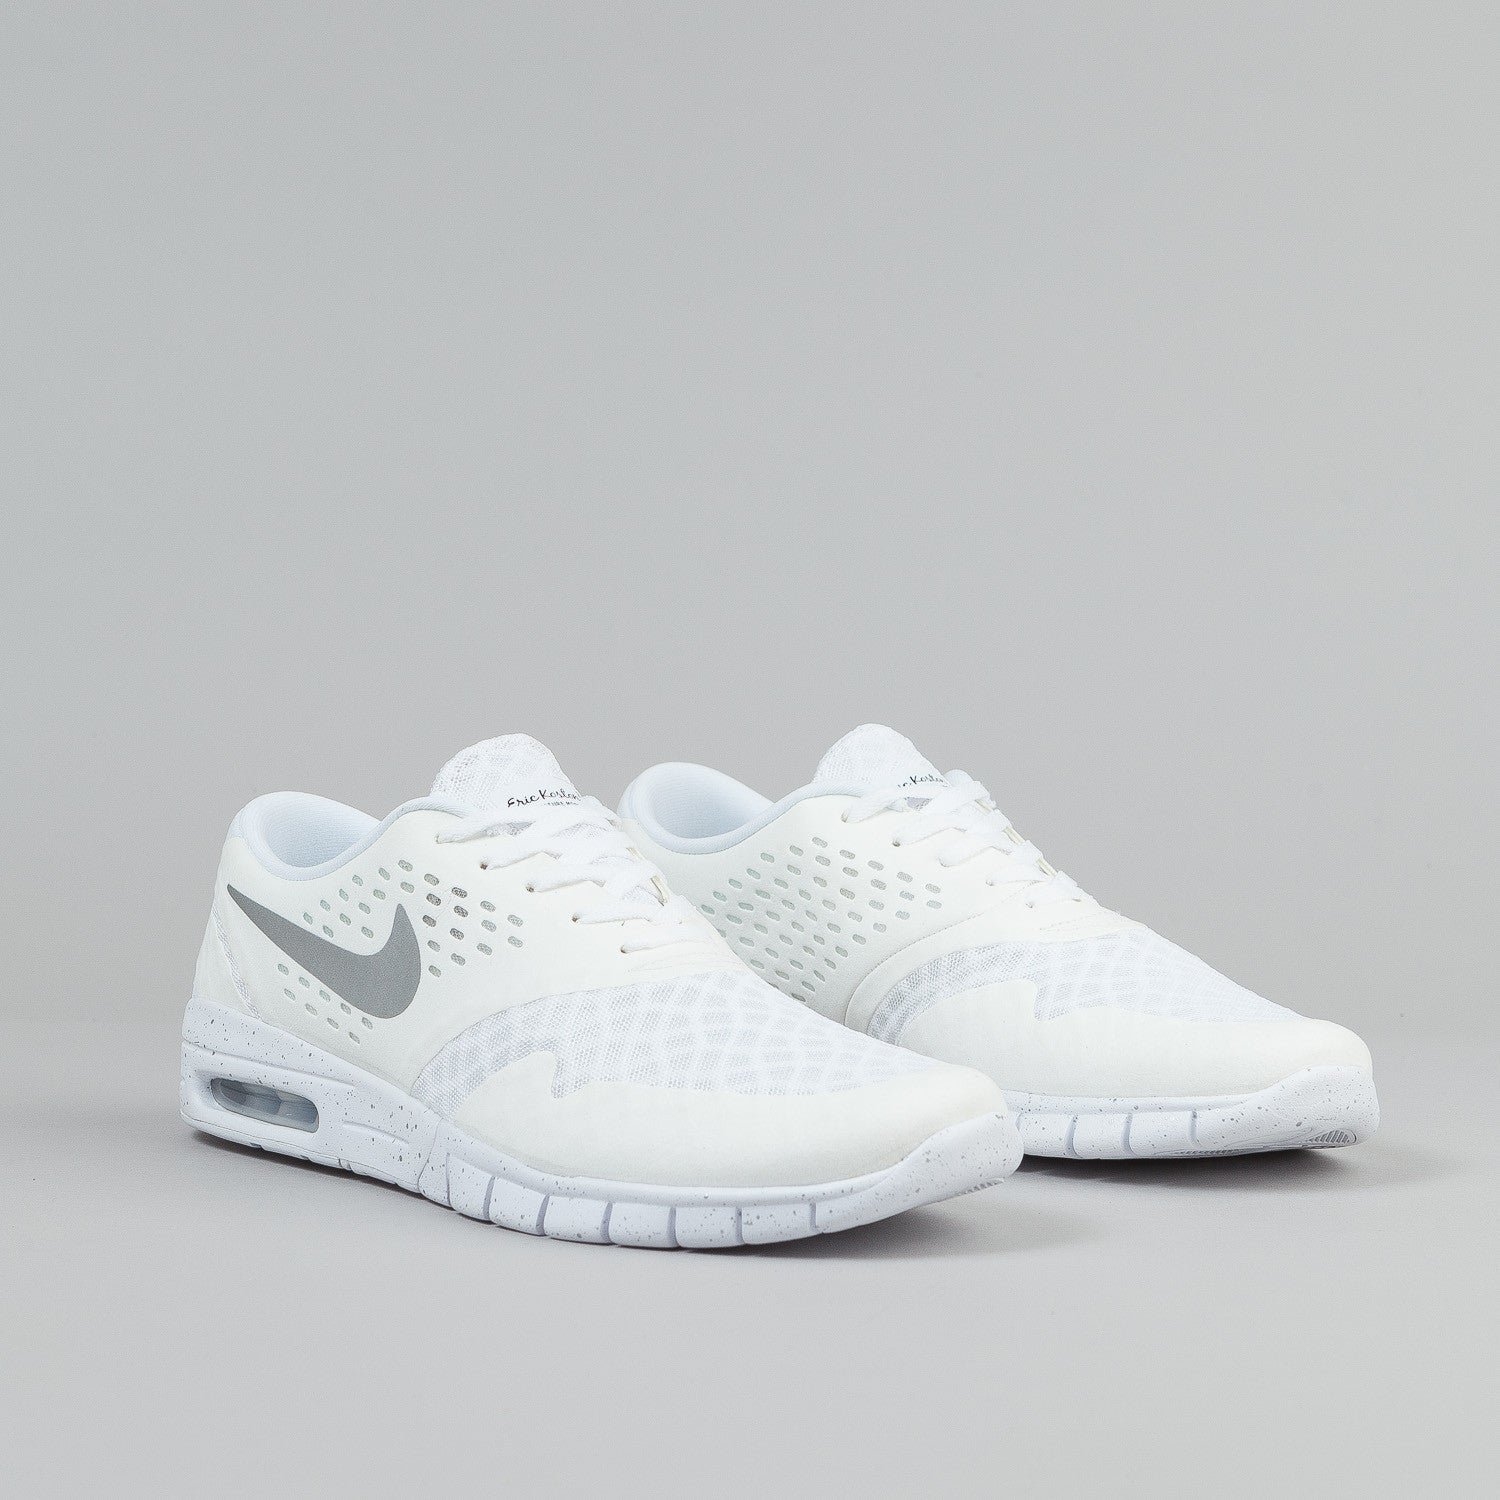 Nike SB Eric Koston 2 Max Shoes - White / Metallic Silver / Black